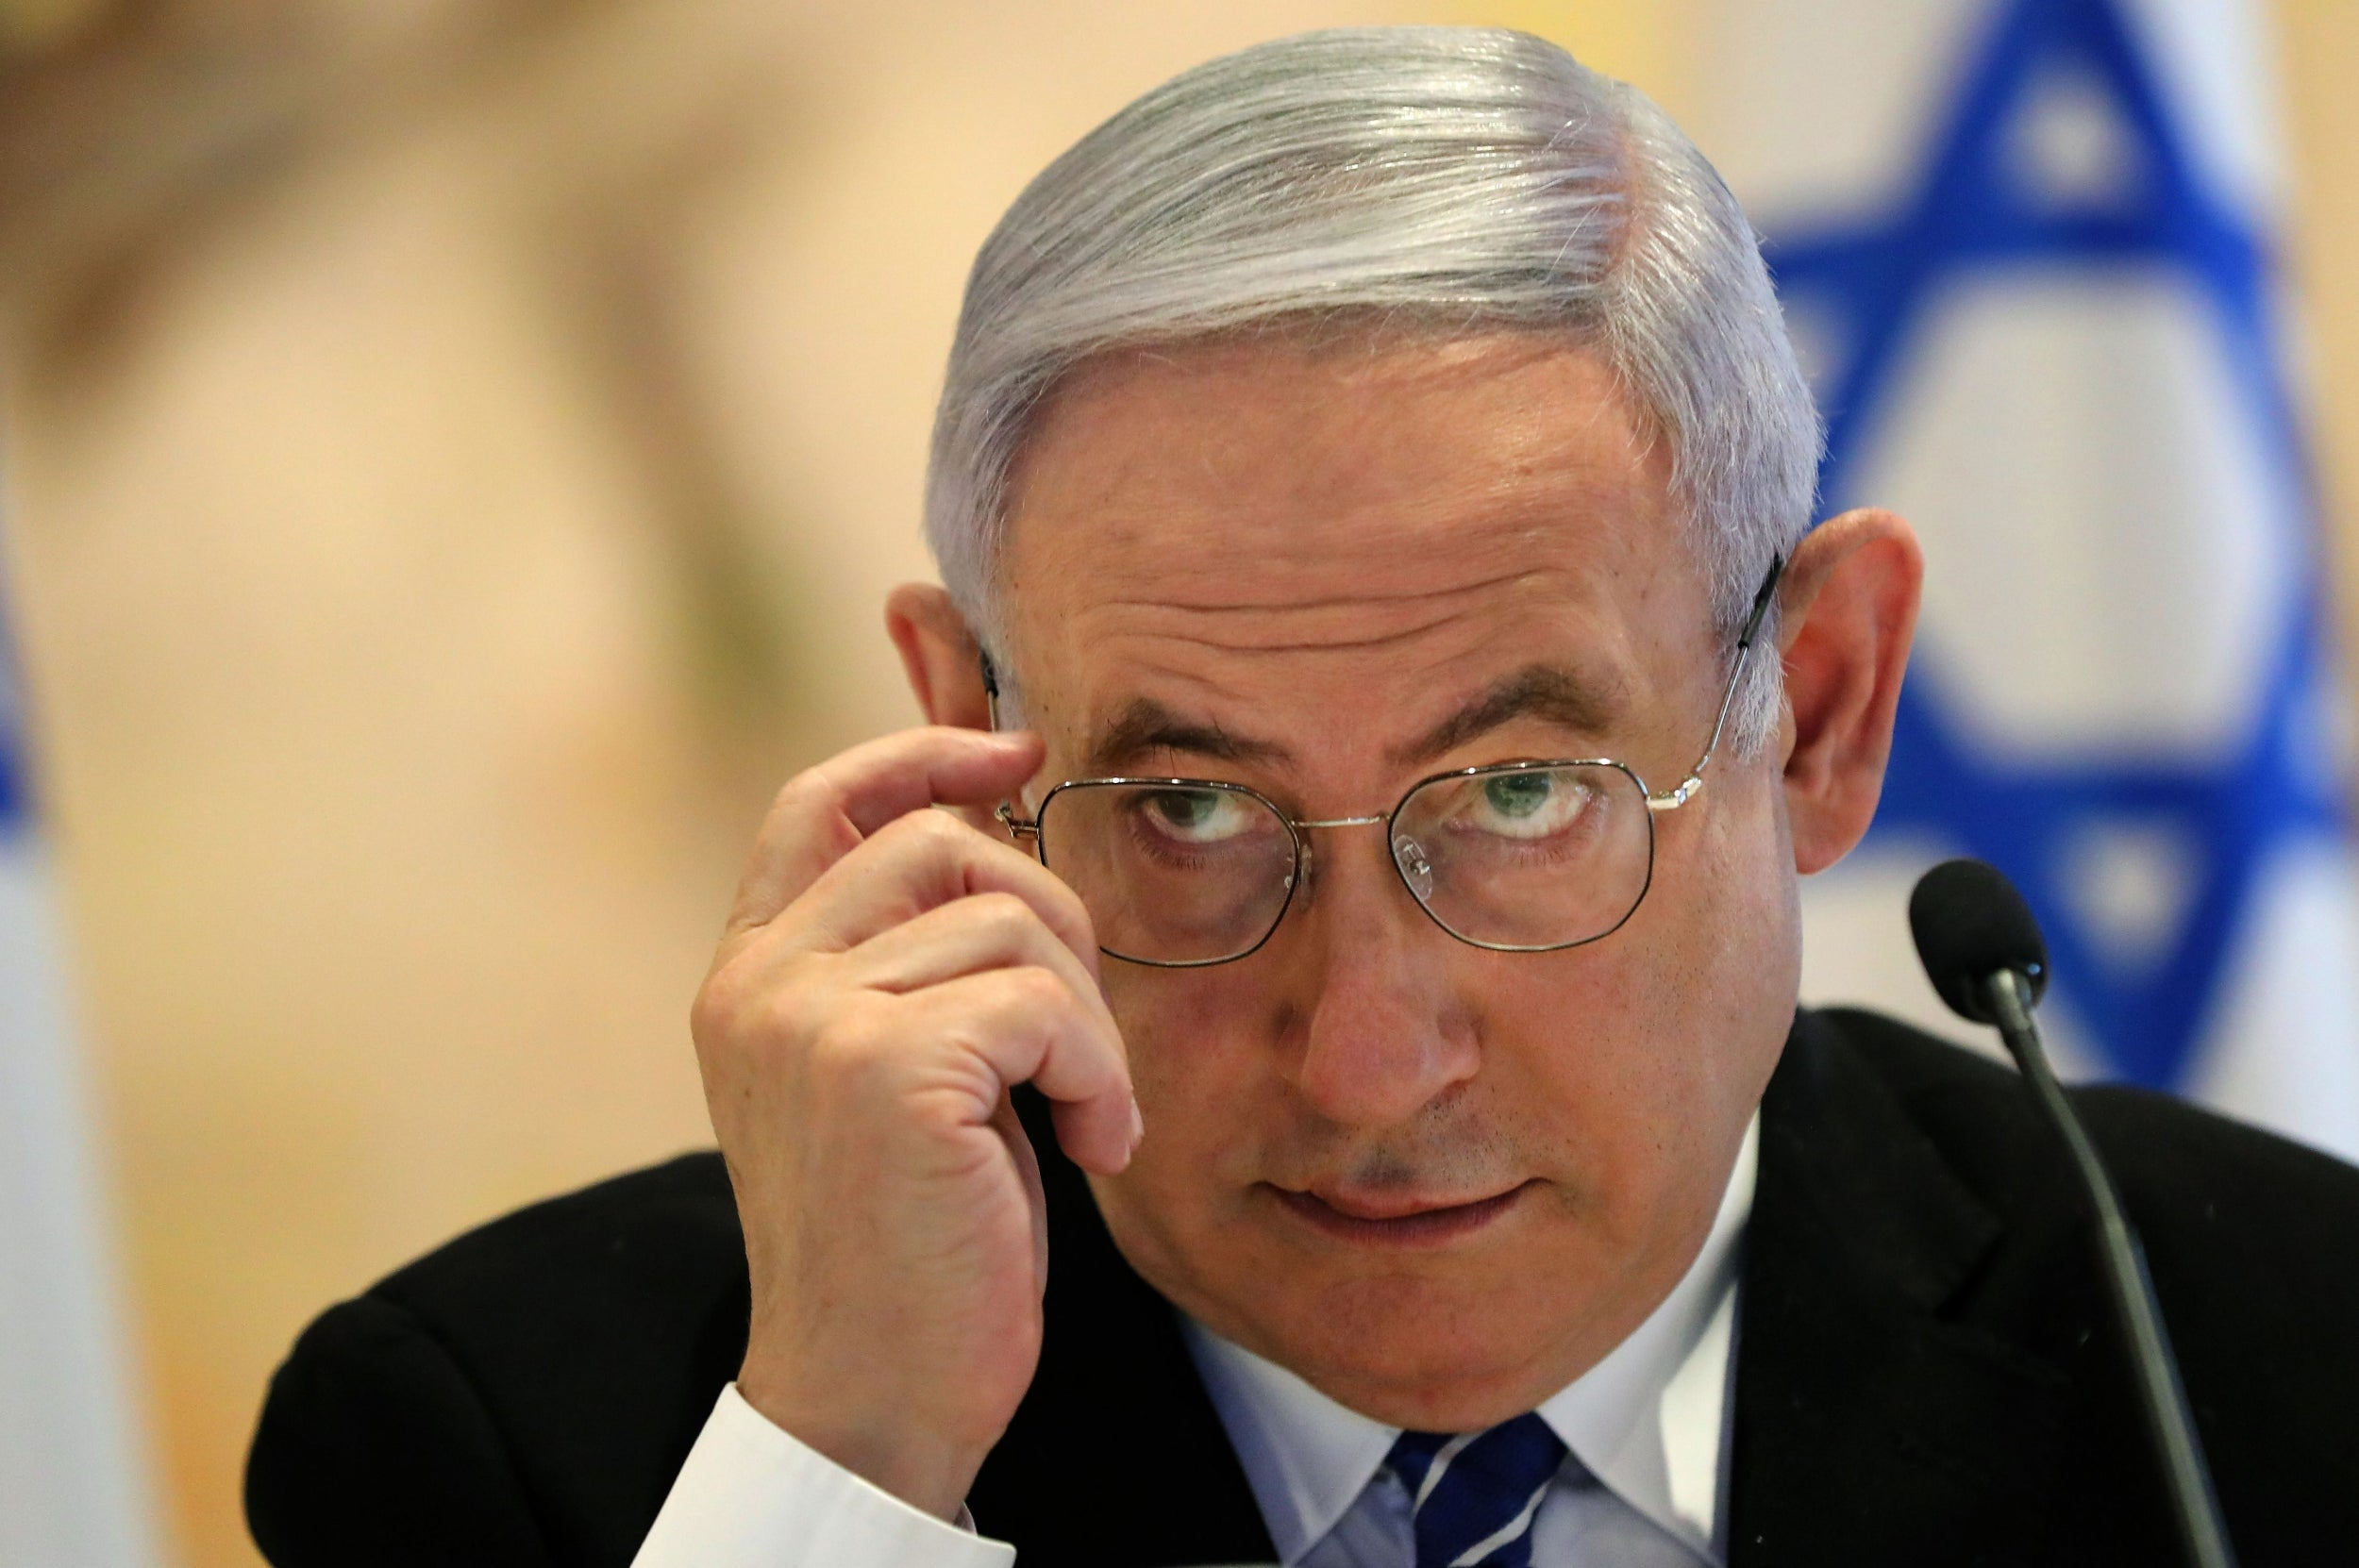 Netanyahu to appear at Jerusalem court on corruption charges as first sitting Israeli premier on trial